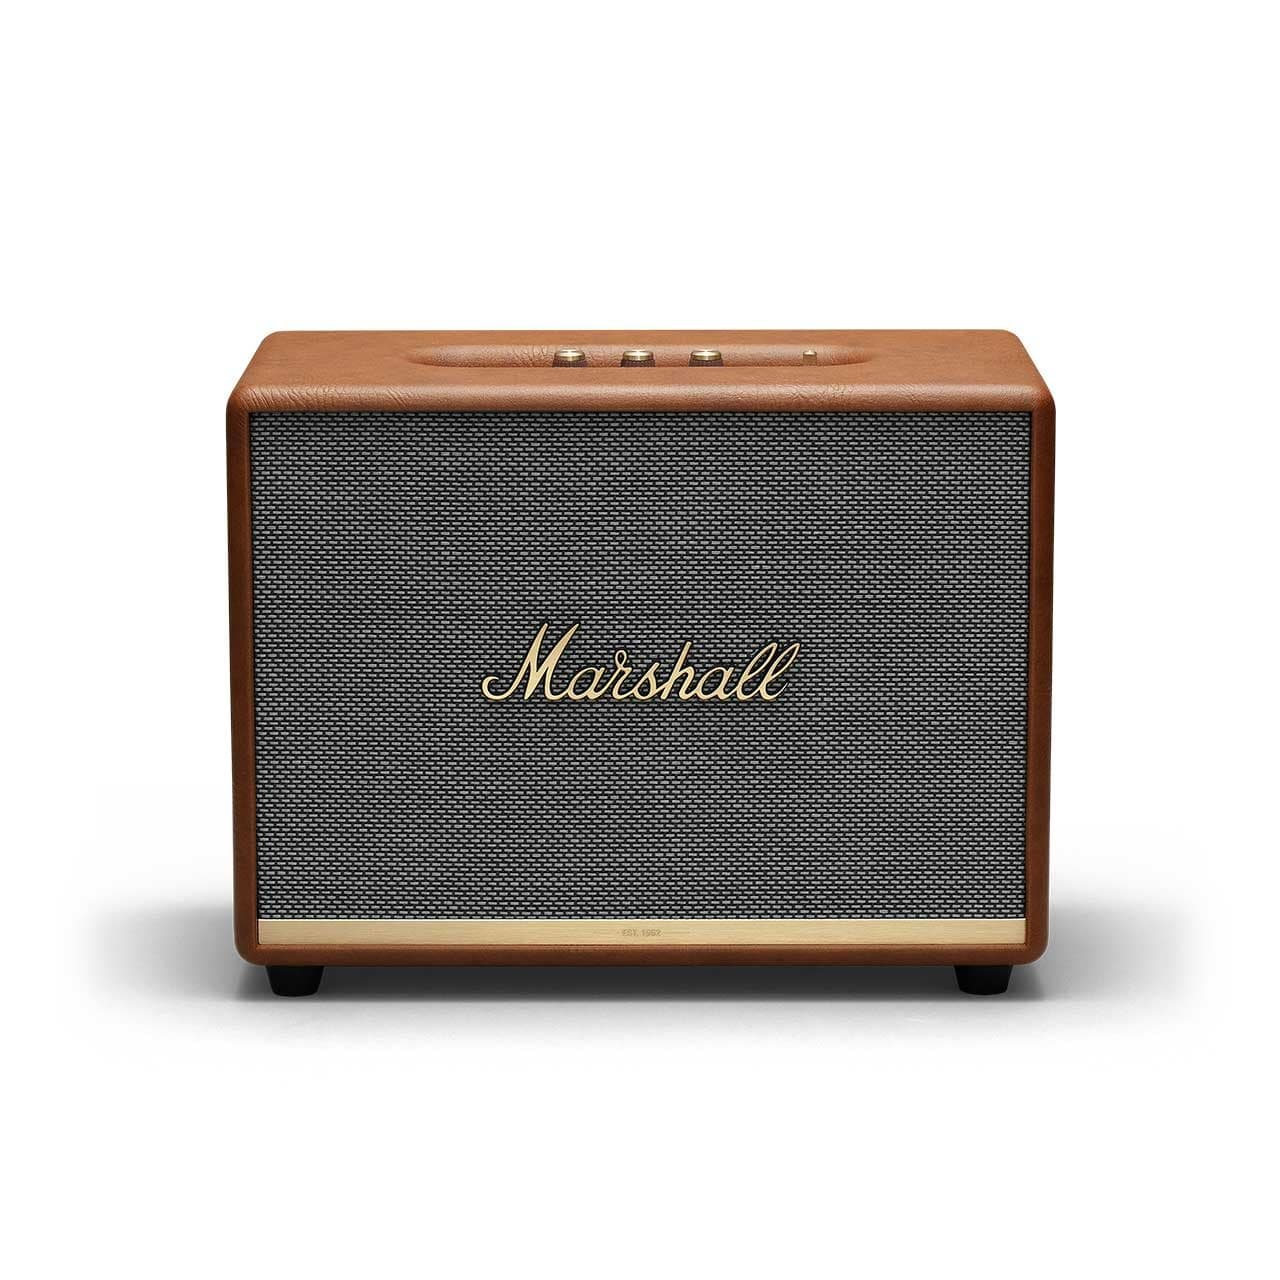 MARSHALL Hnědý reproduktor Woburn II Bluetooth Brown